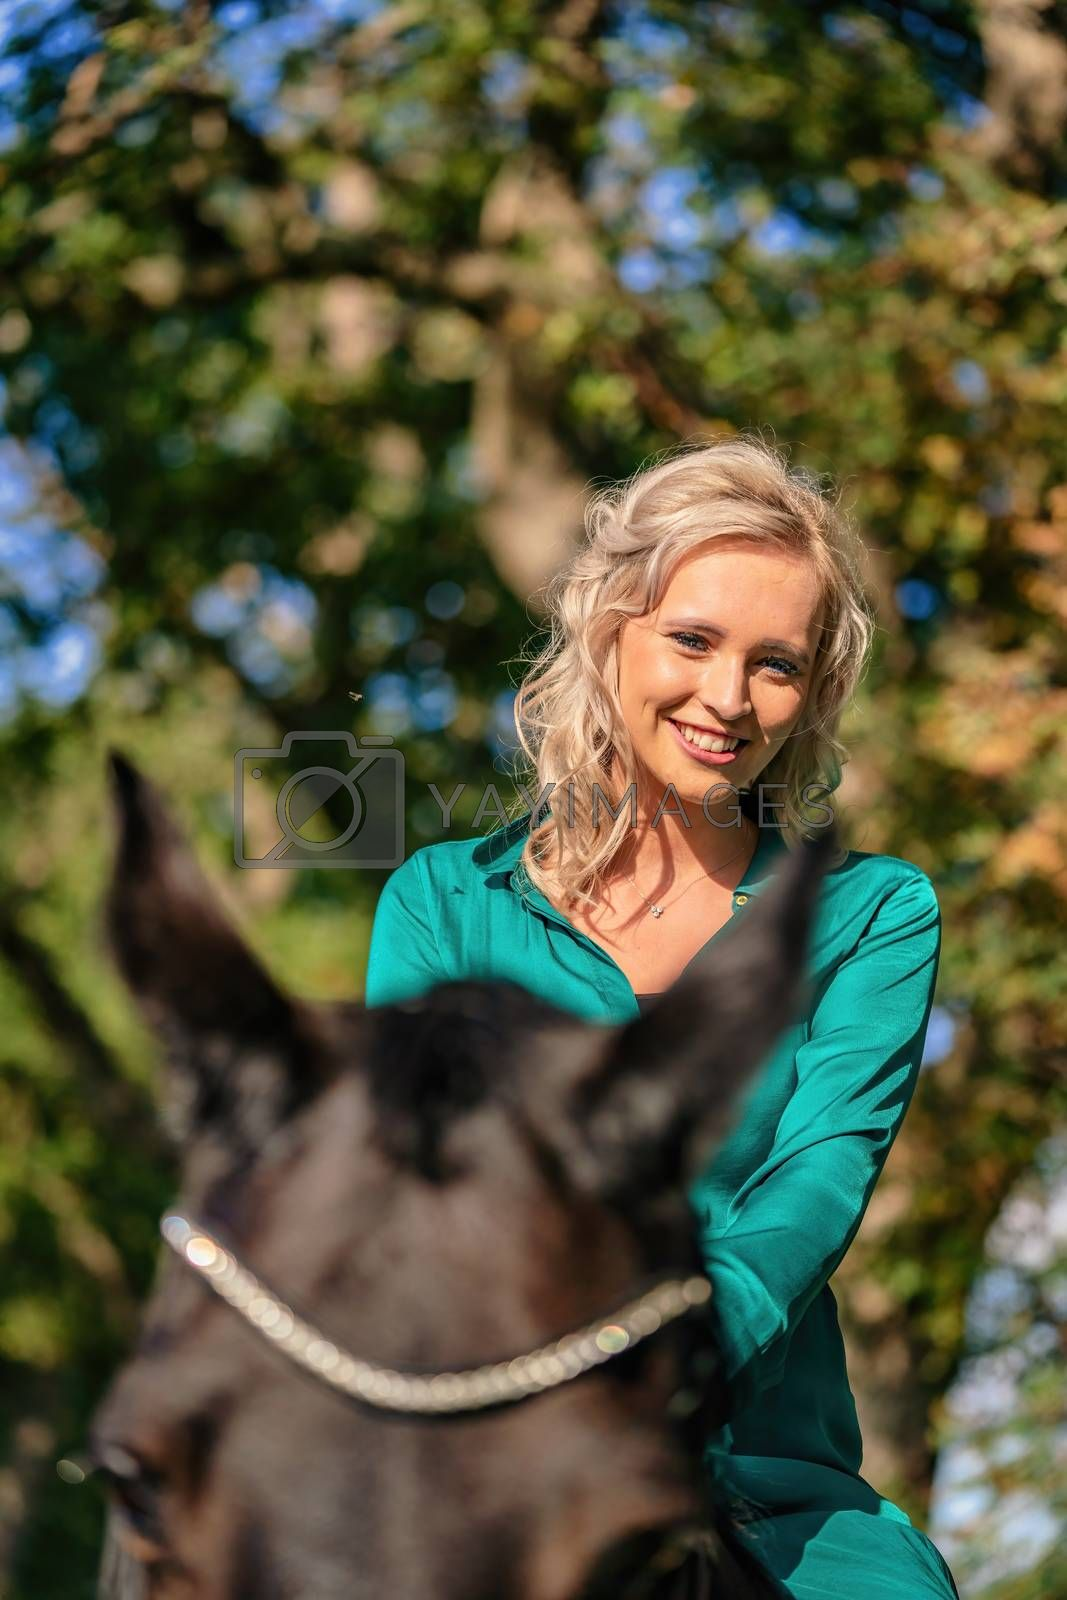 A Woman with her horse portrait at sunset, autumn outdoors scene.